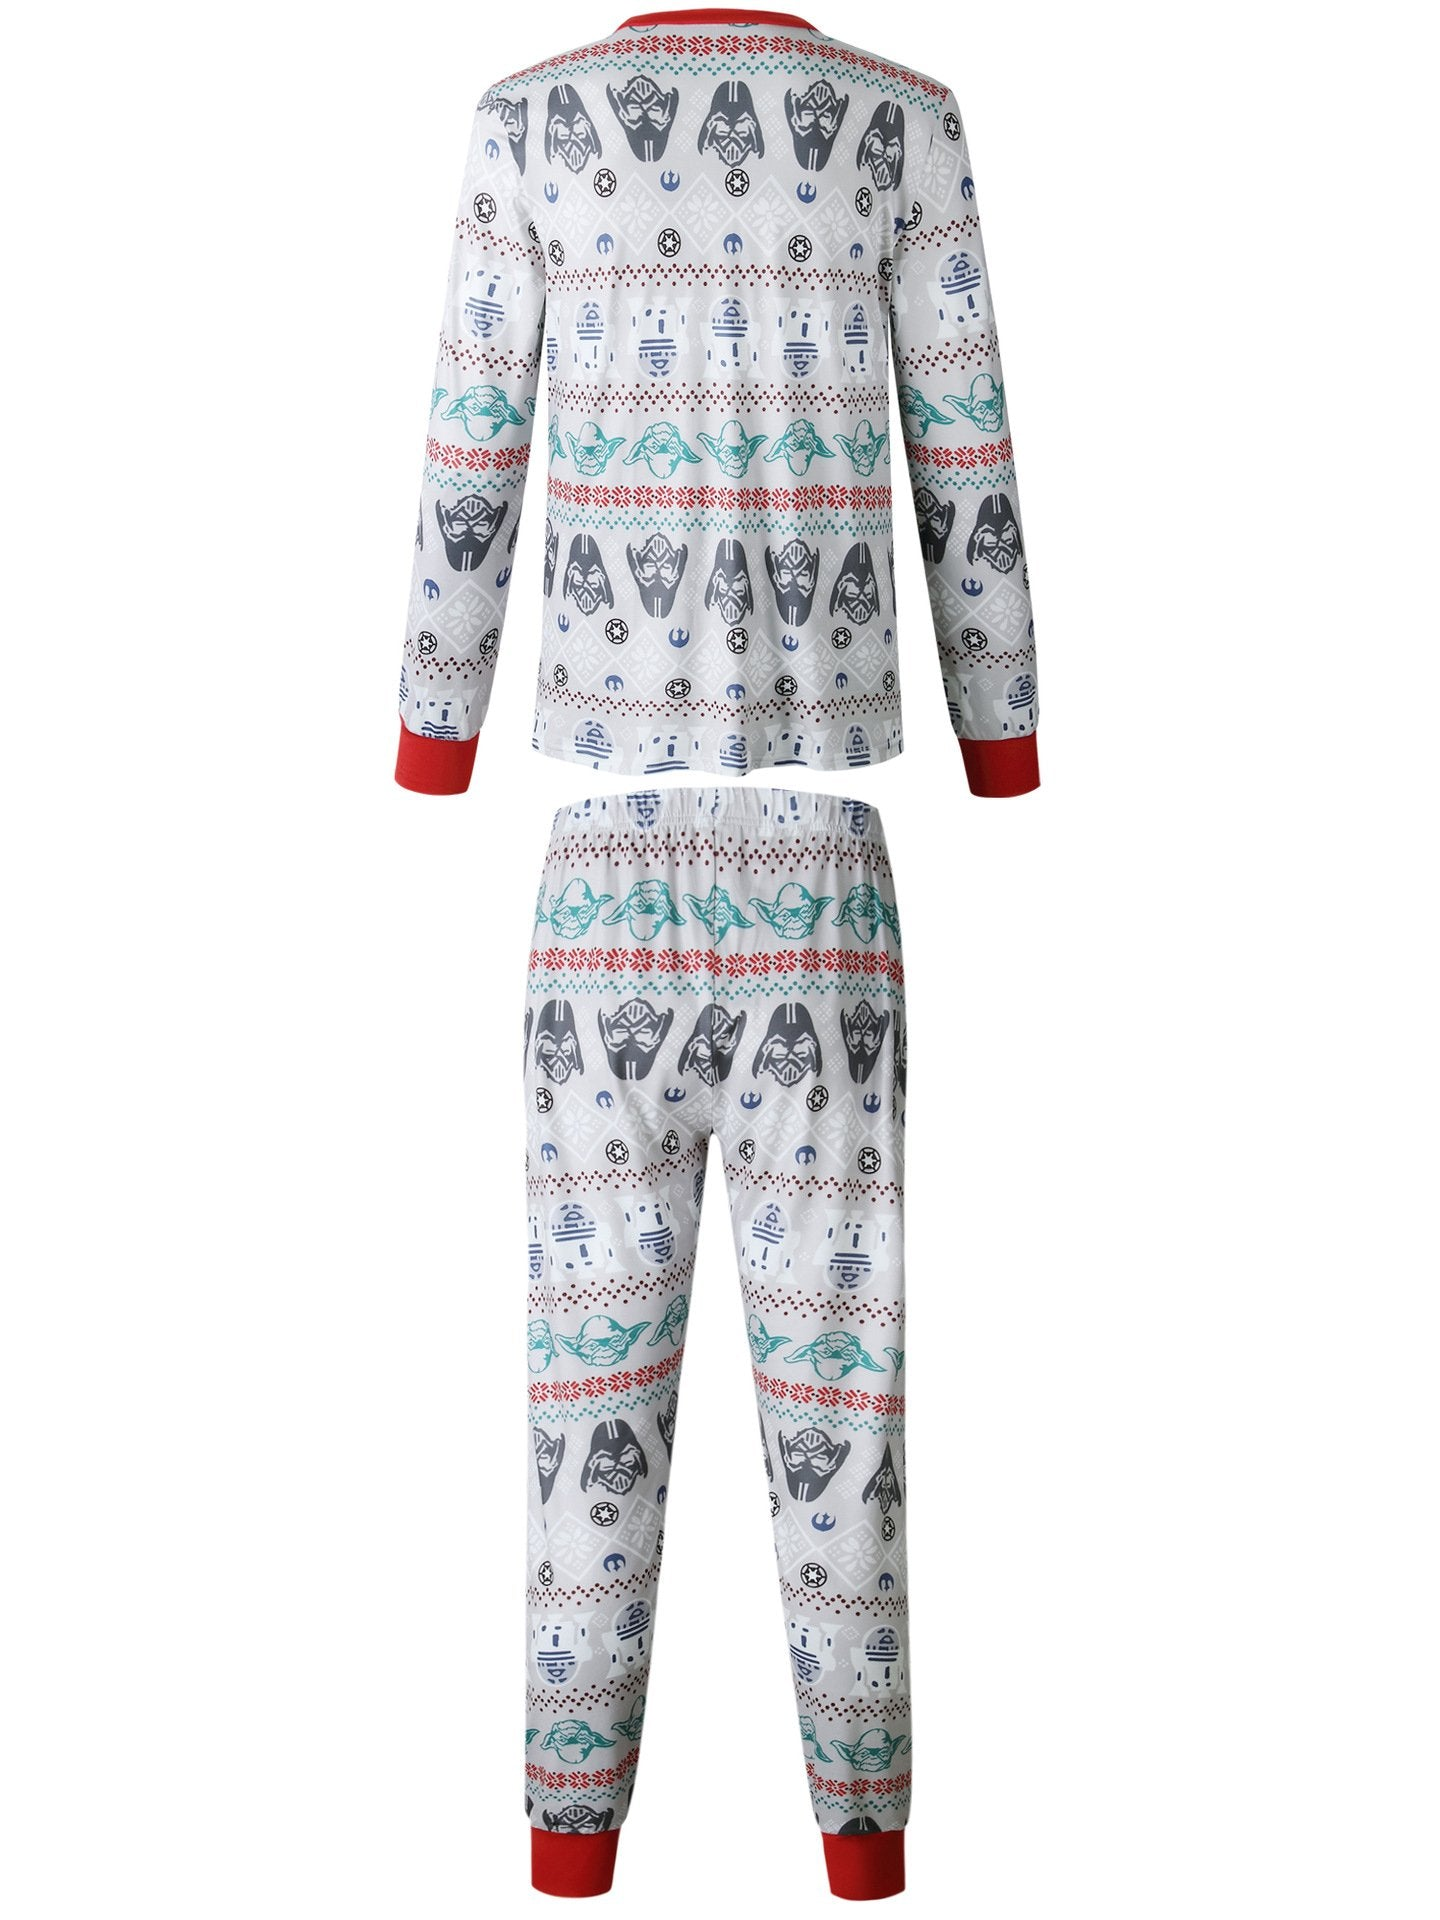 Christmas Holiday Family Sleepwear